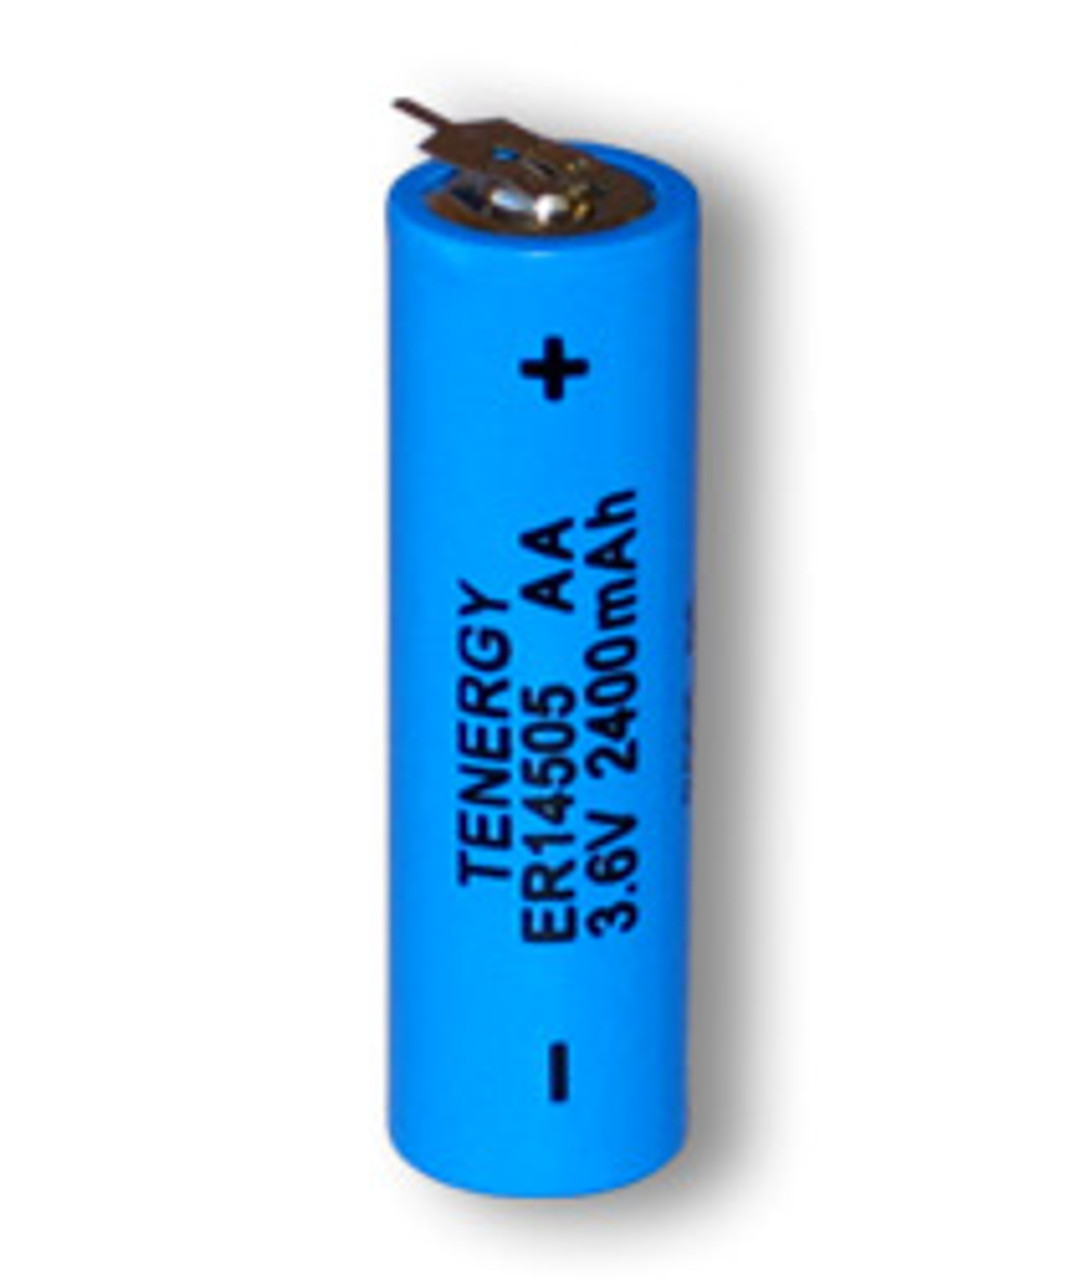 Primary Lithium Thionyl chloride Battery AA Size 3.6V 2400 mAh (ER14505) (non Rechargeable)